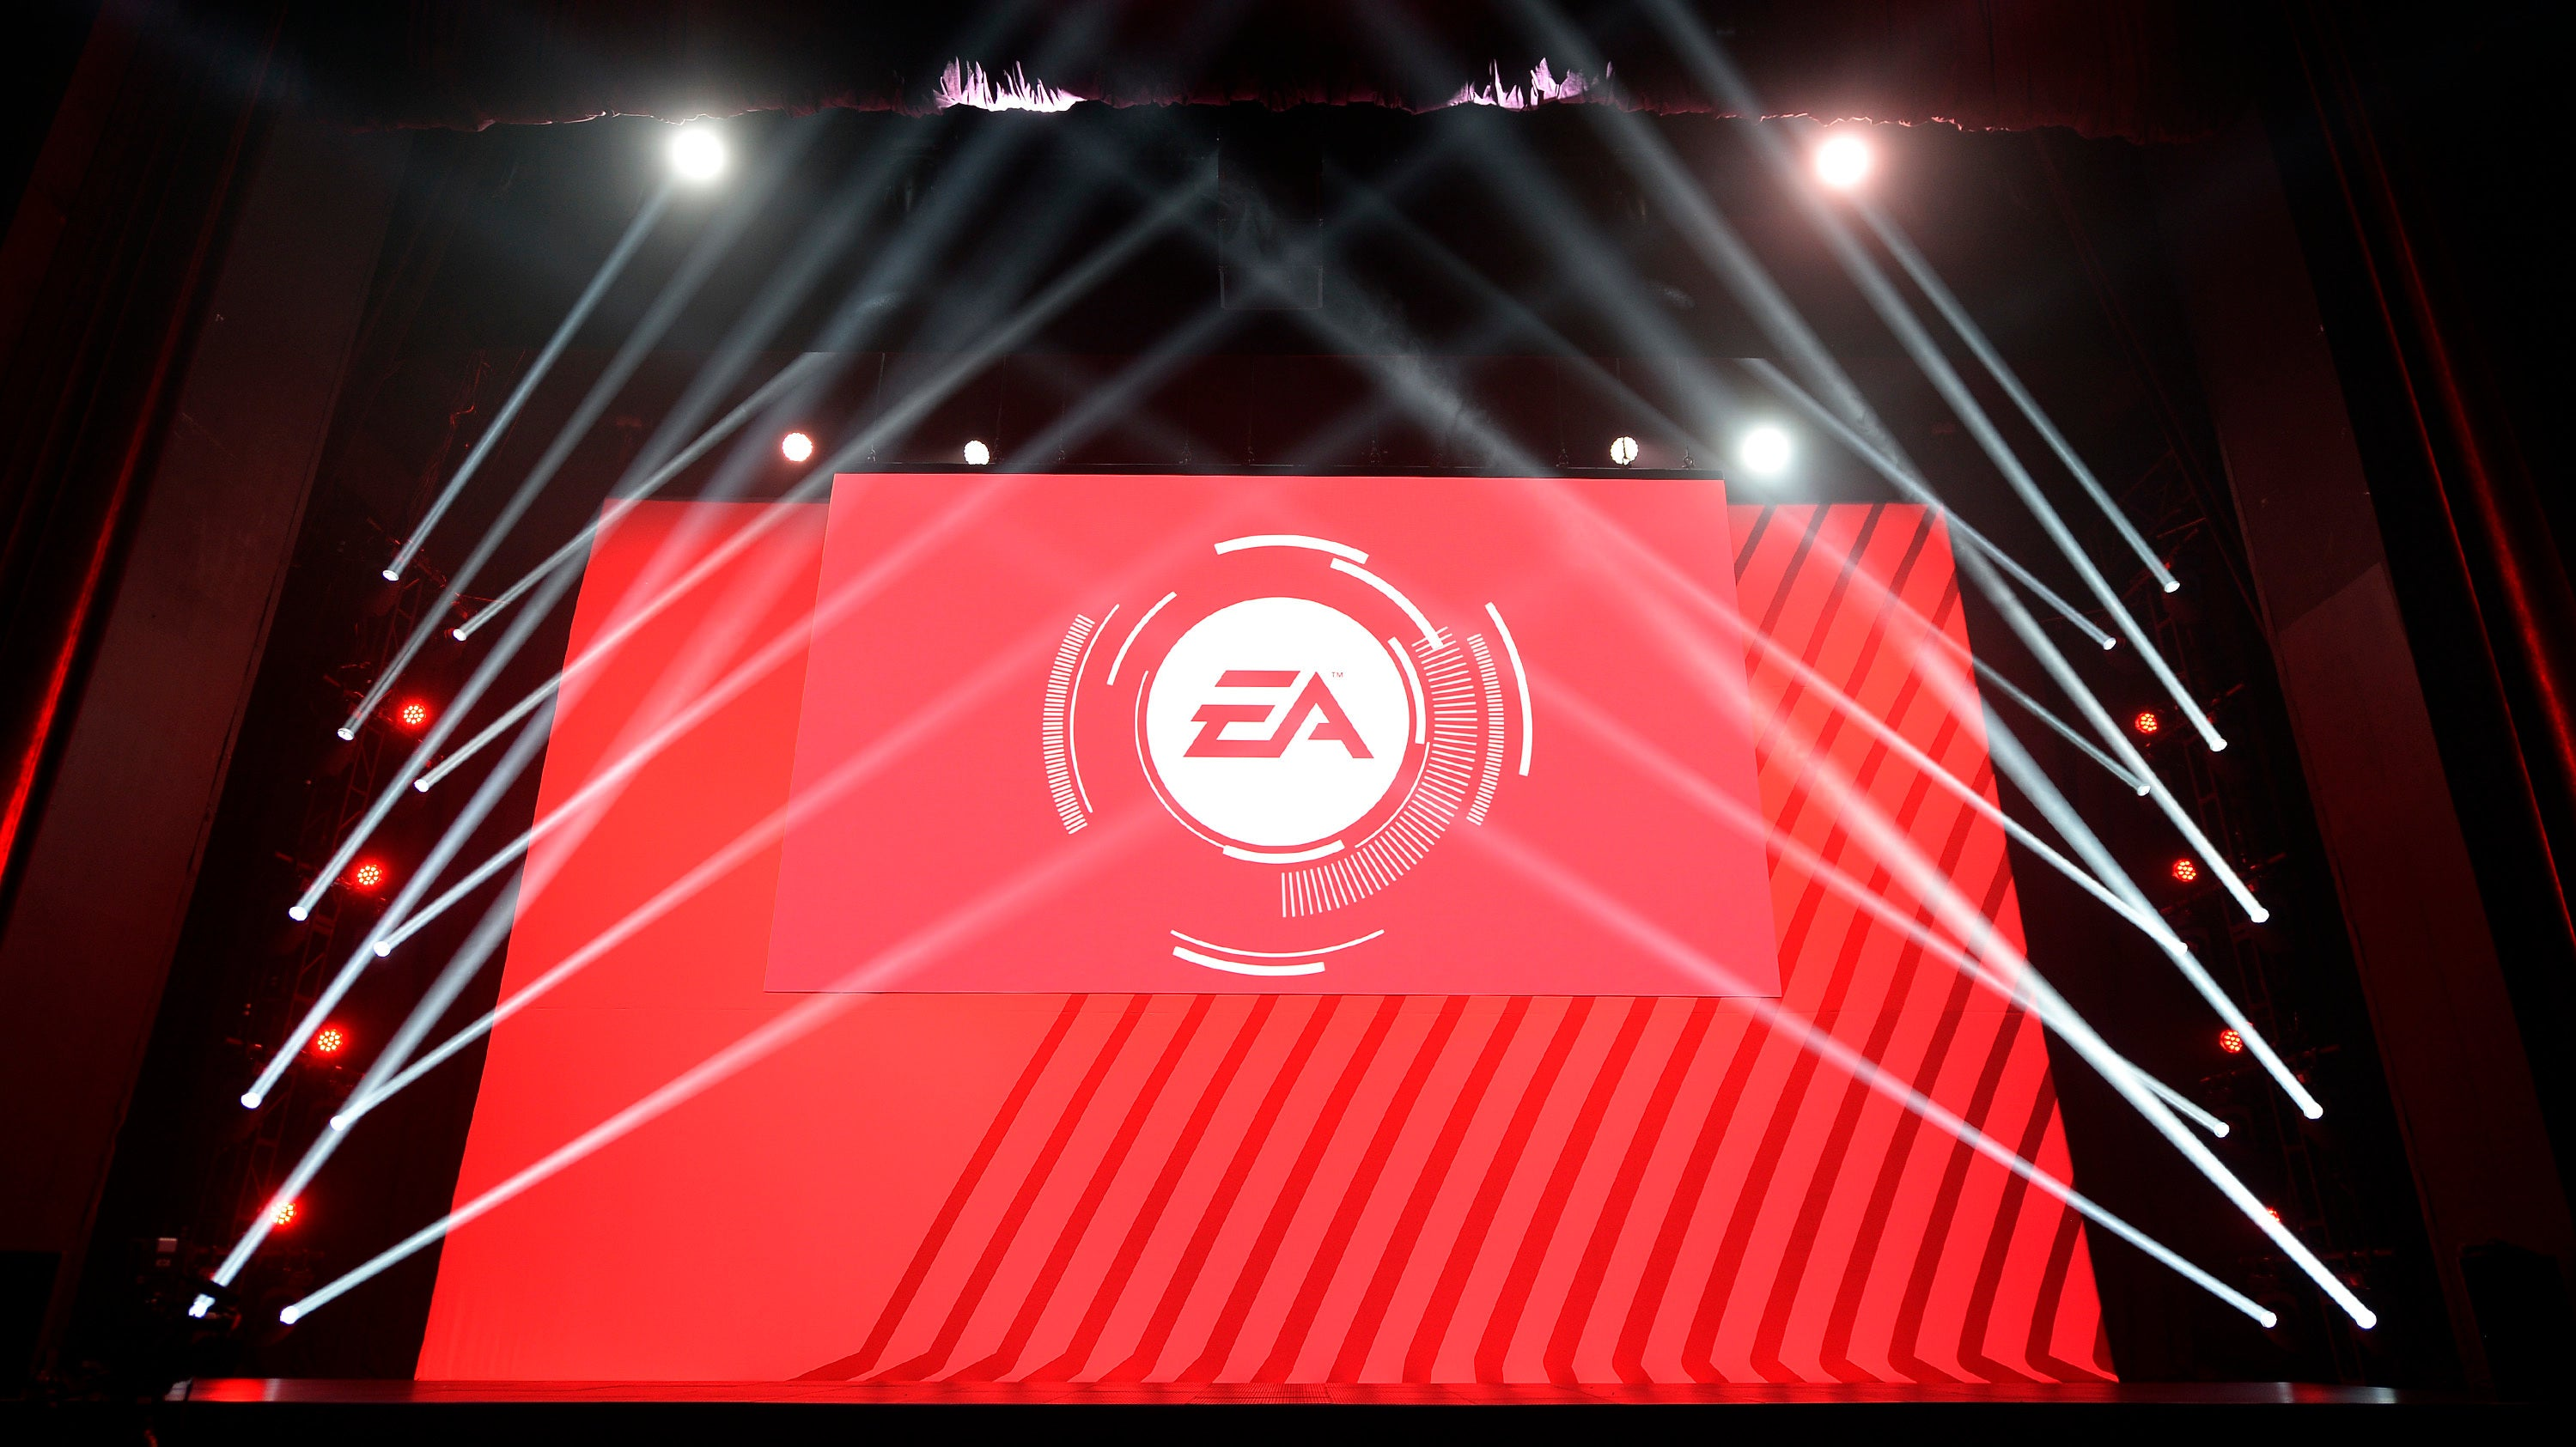 EA Lays Off 350 People In Marketing, Publishing, And More